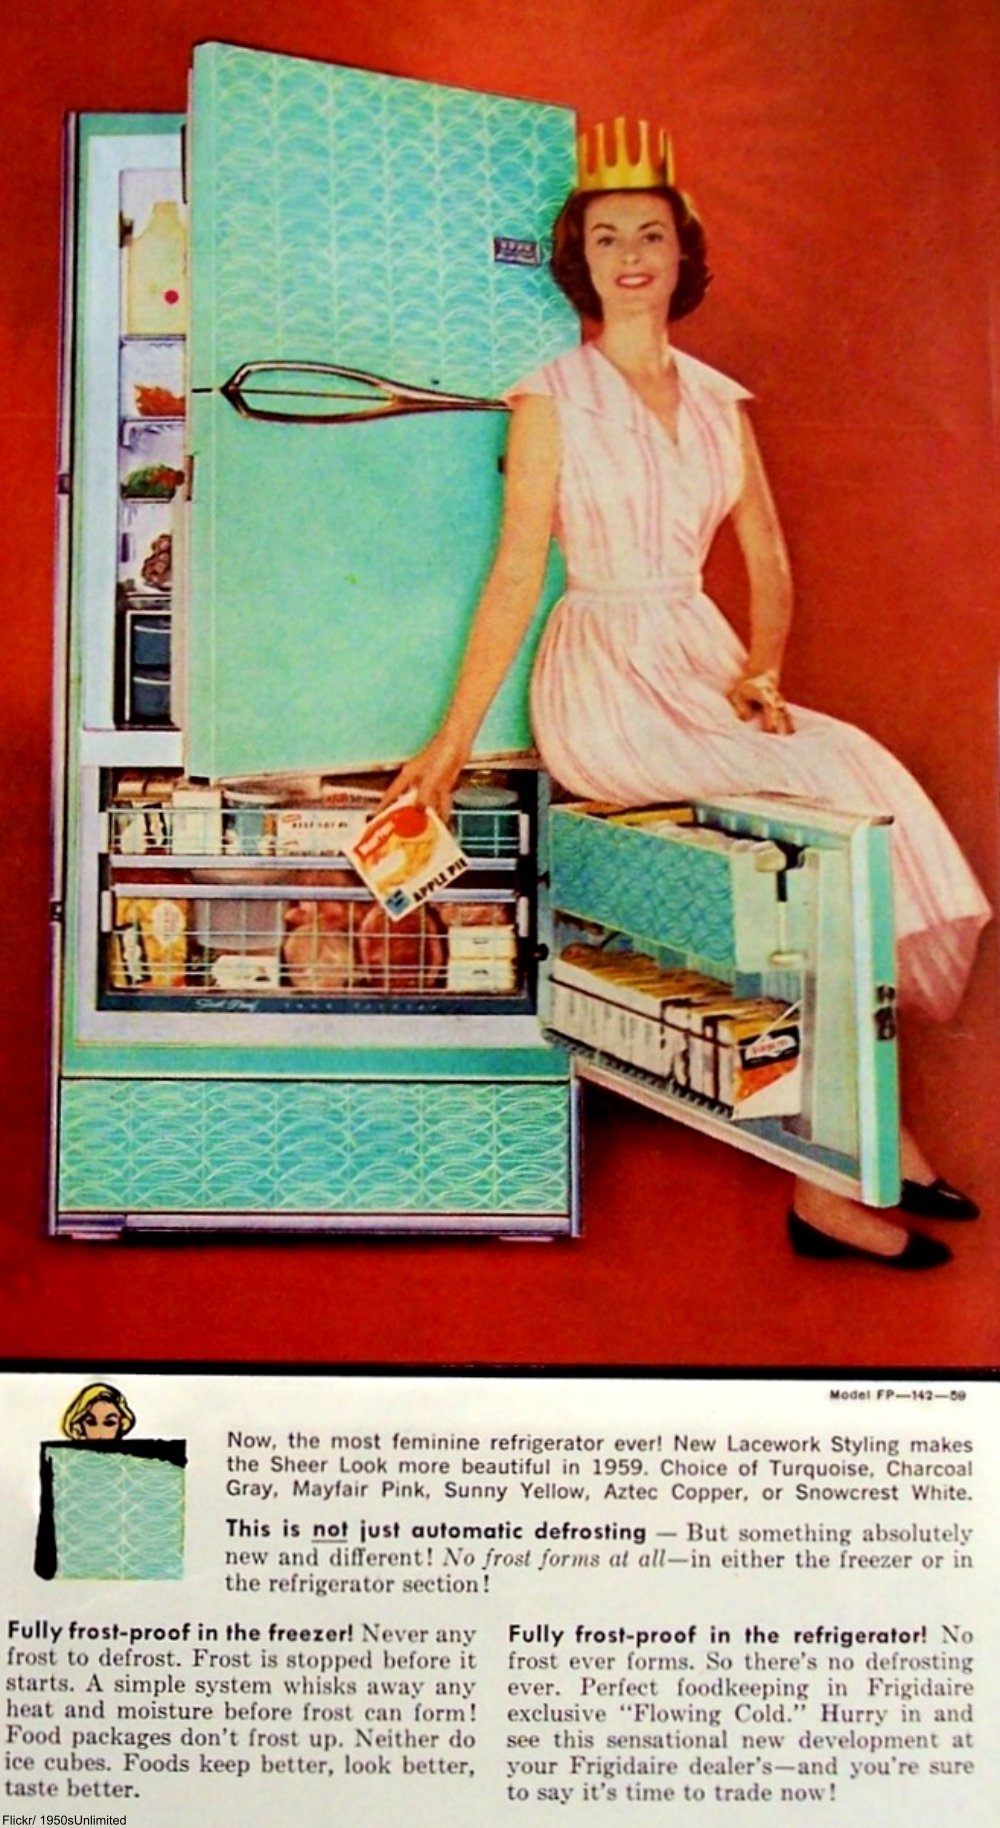 Vintage Advertisements That Would Never Fly Today